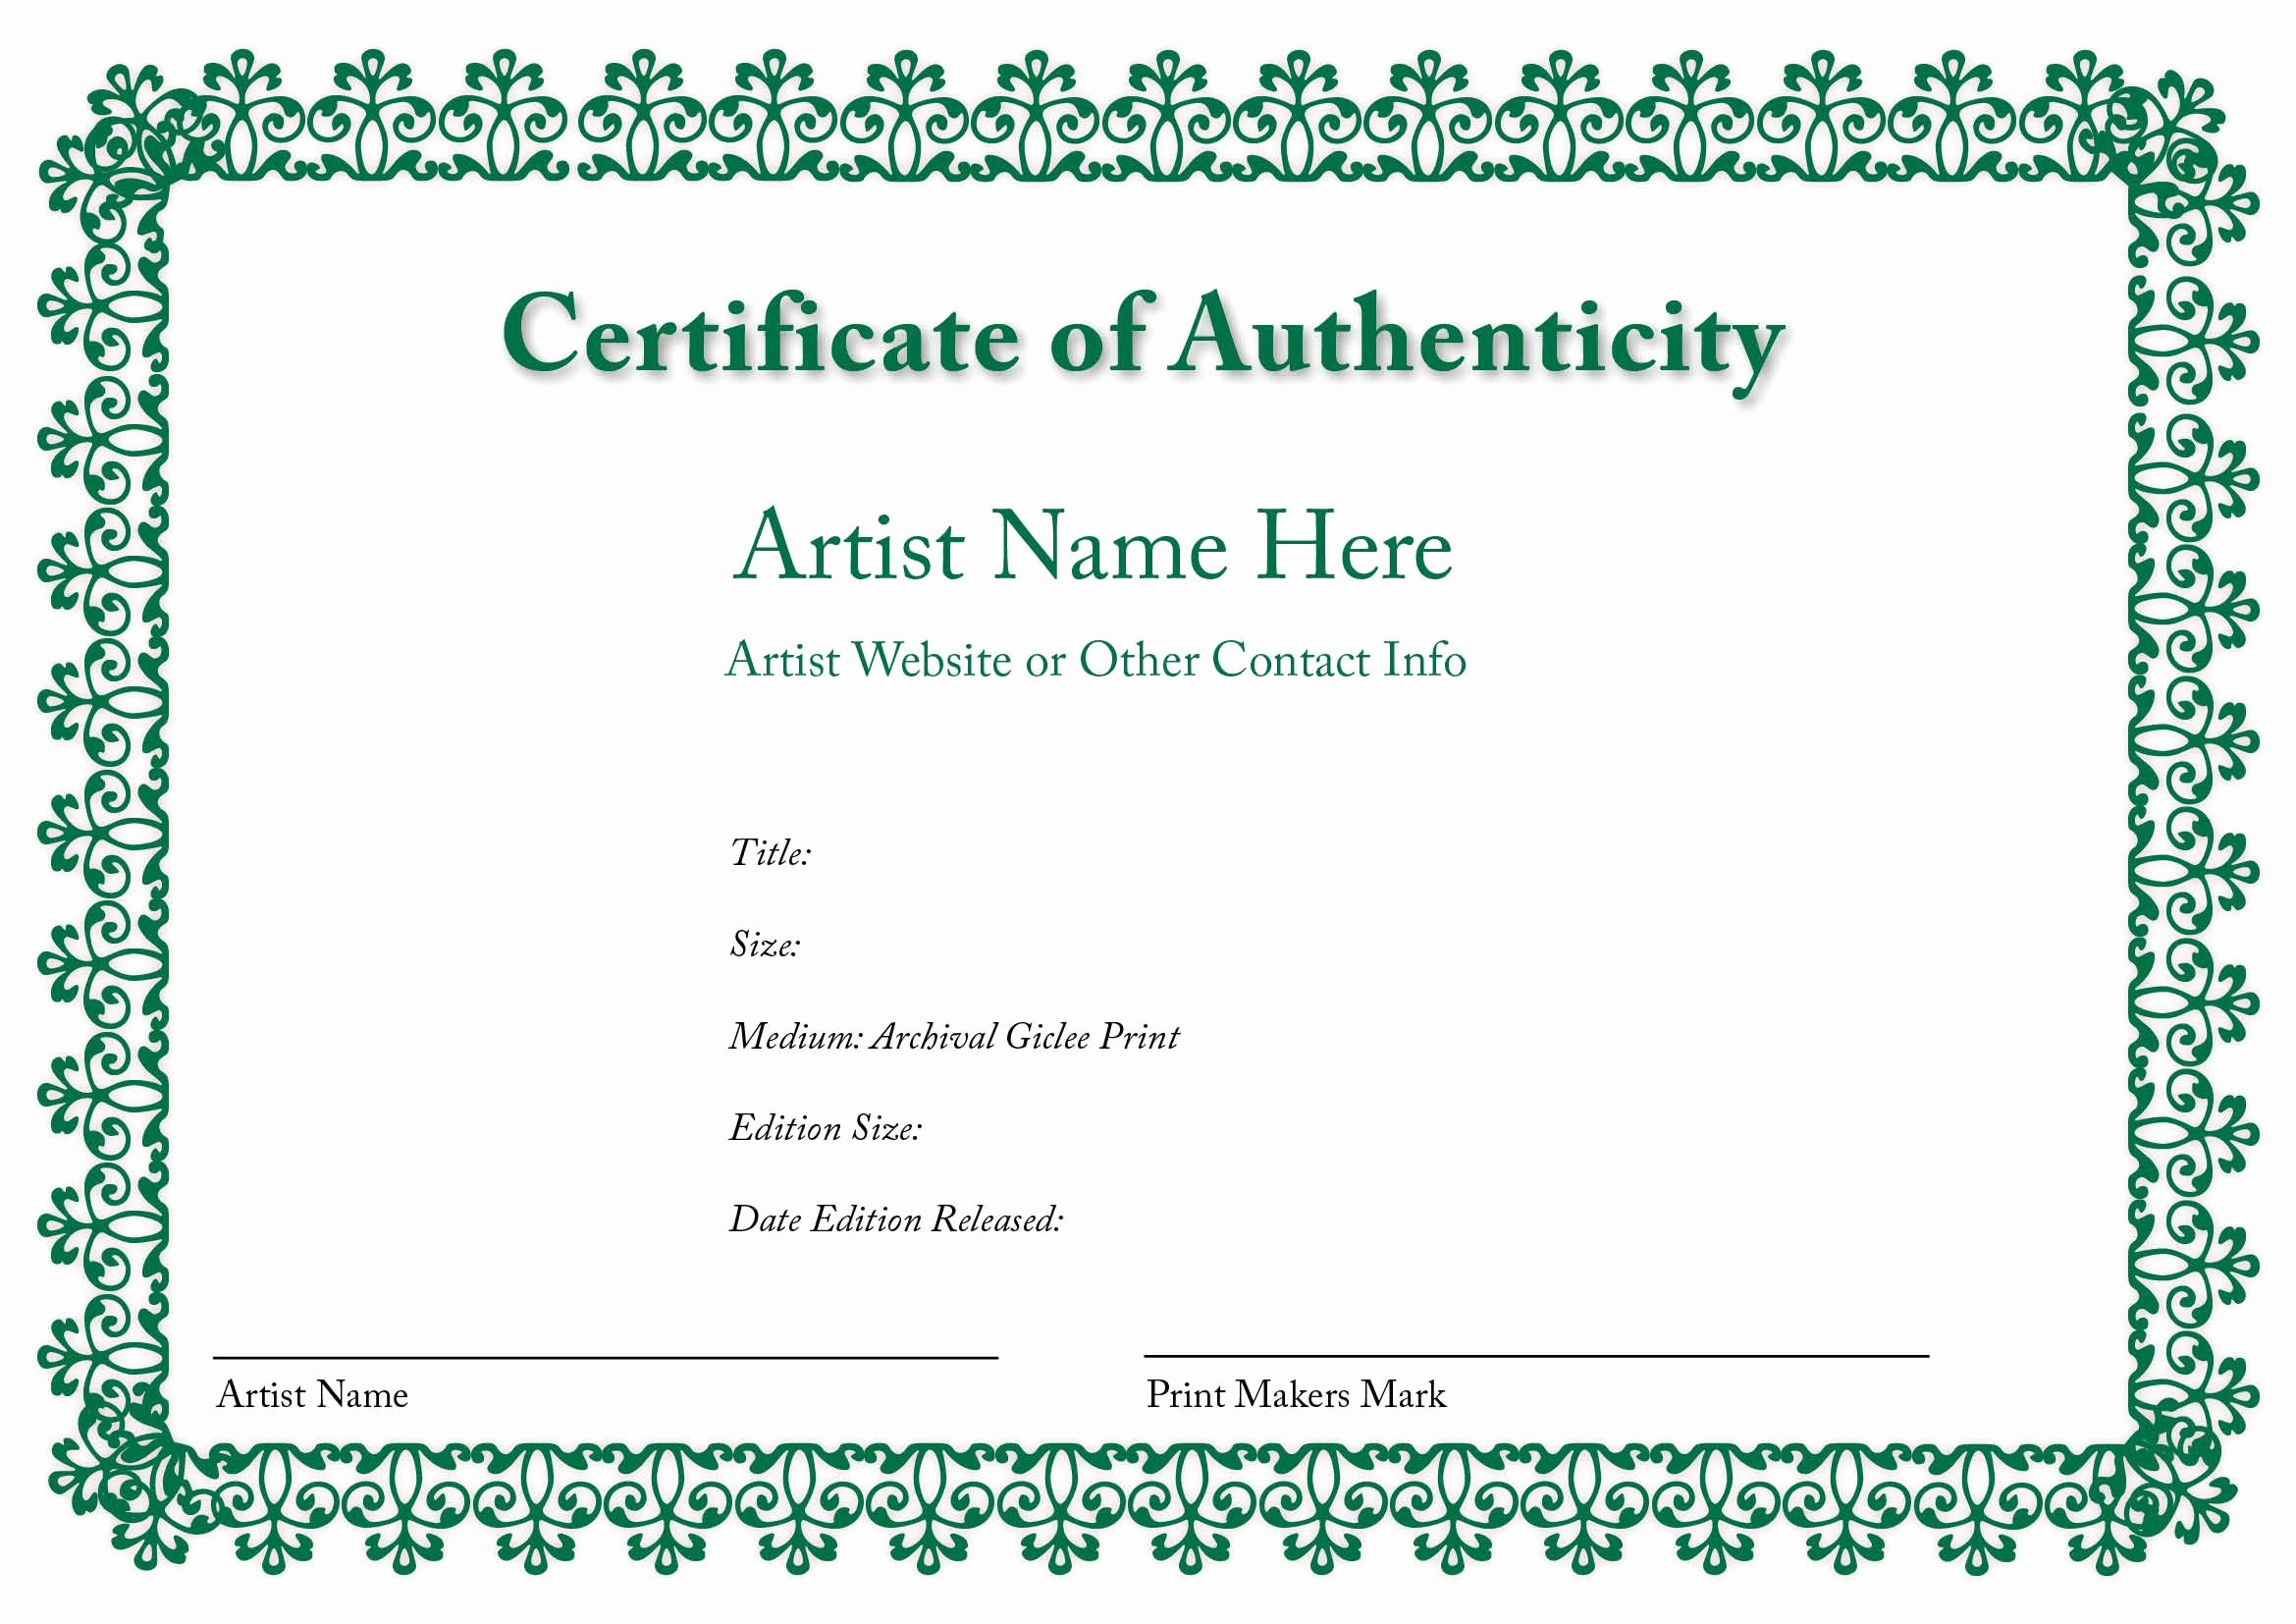 Certificate Of Authenticity Art Template New Certificate Of Authenticity Of An Art Print In 2019